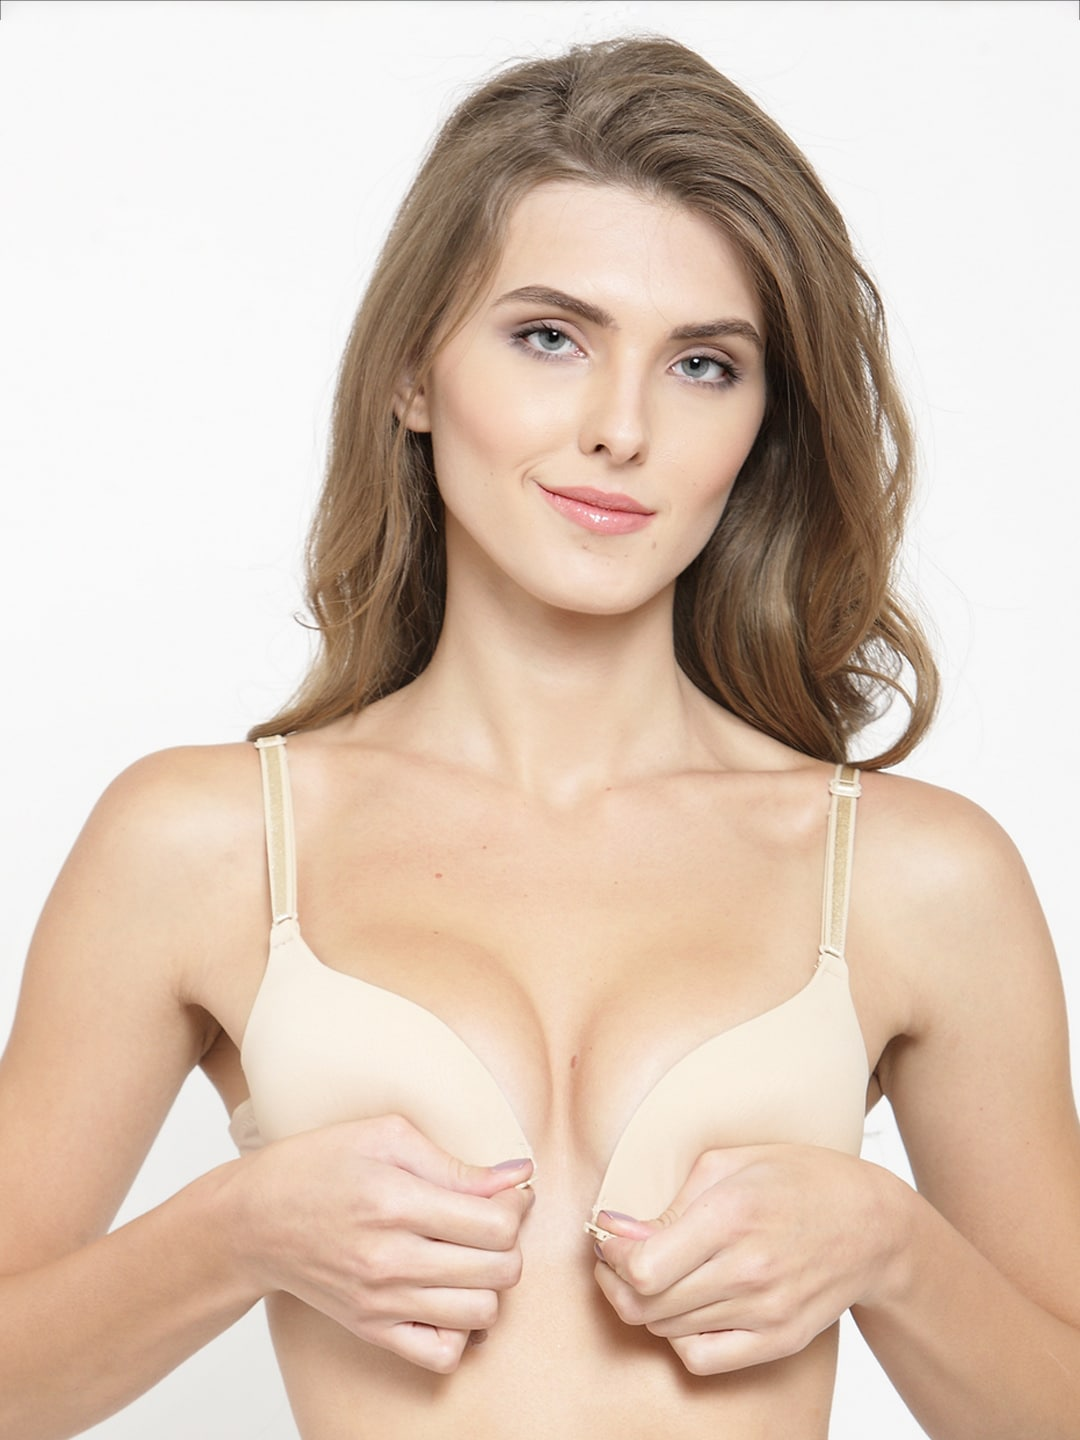 2a4dbd8788 Push Up Bra - Buy Push-Up Bras for ladies Online   Best Price